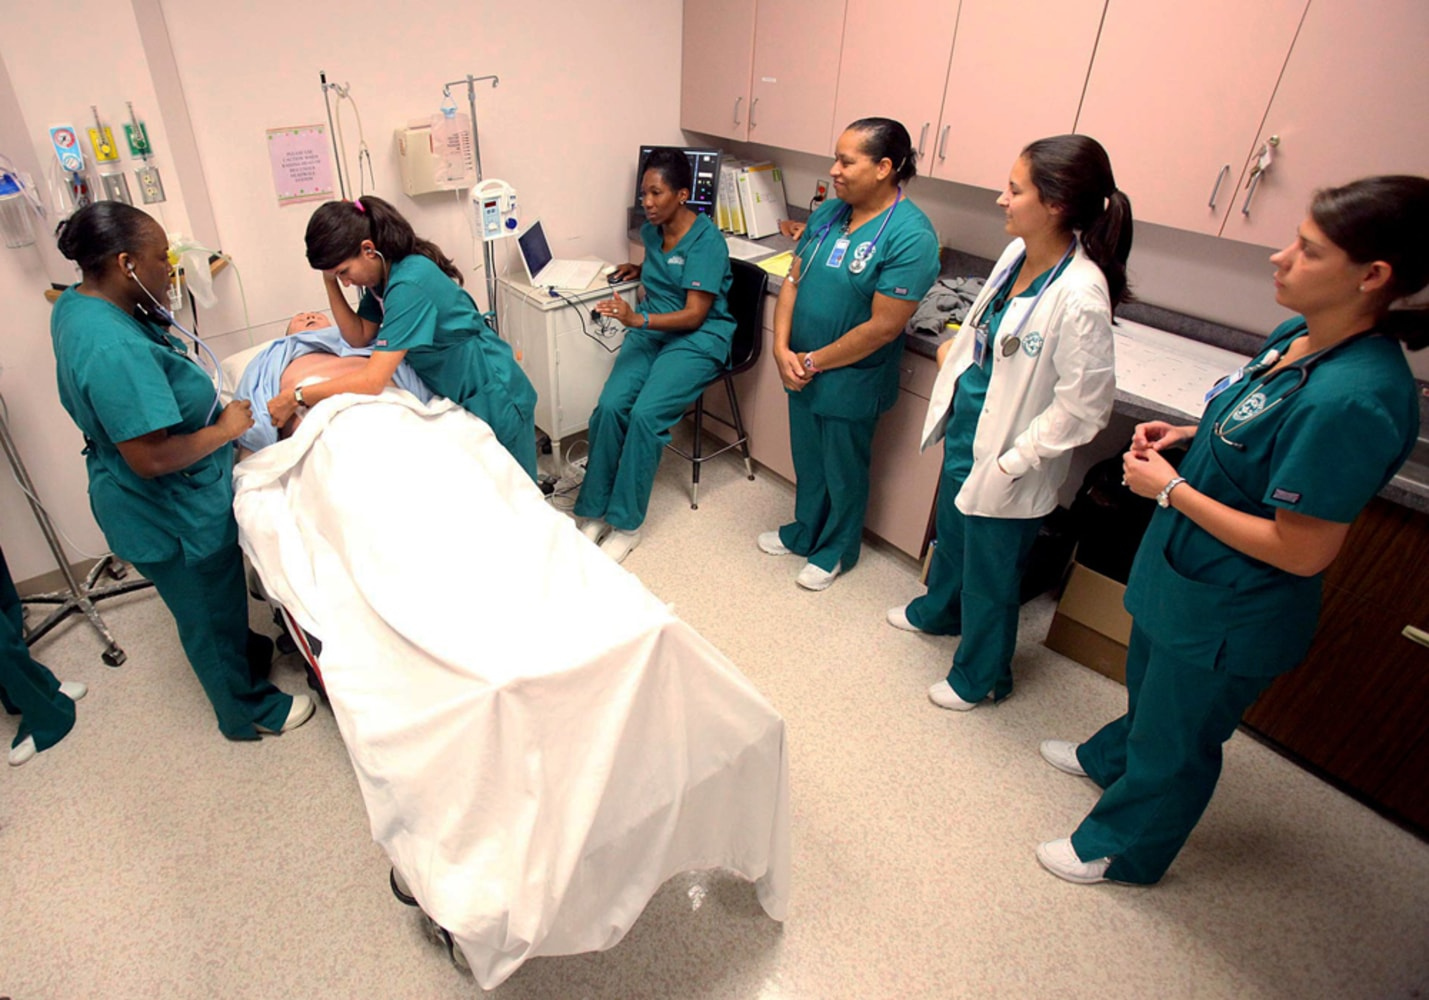 Double Whammy Nursing Shortage Starts In The Classroom